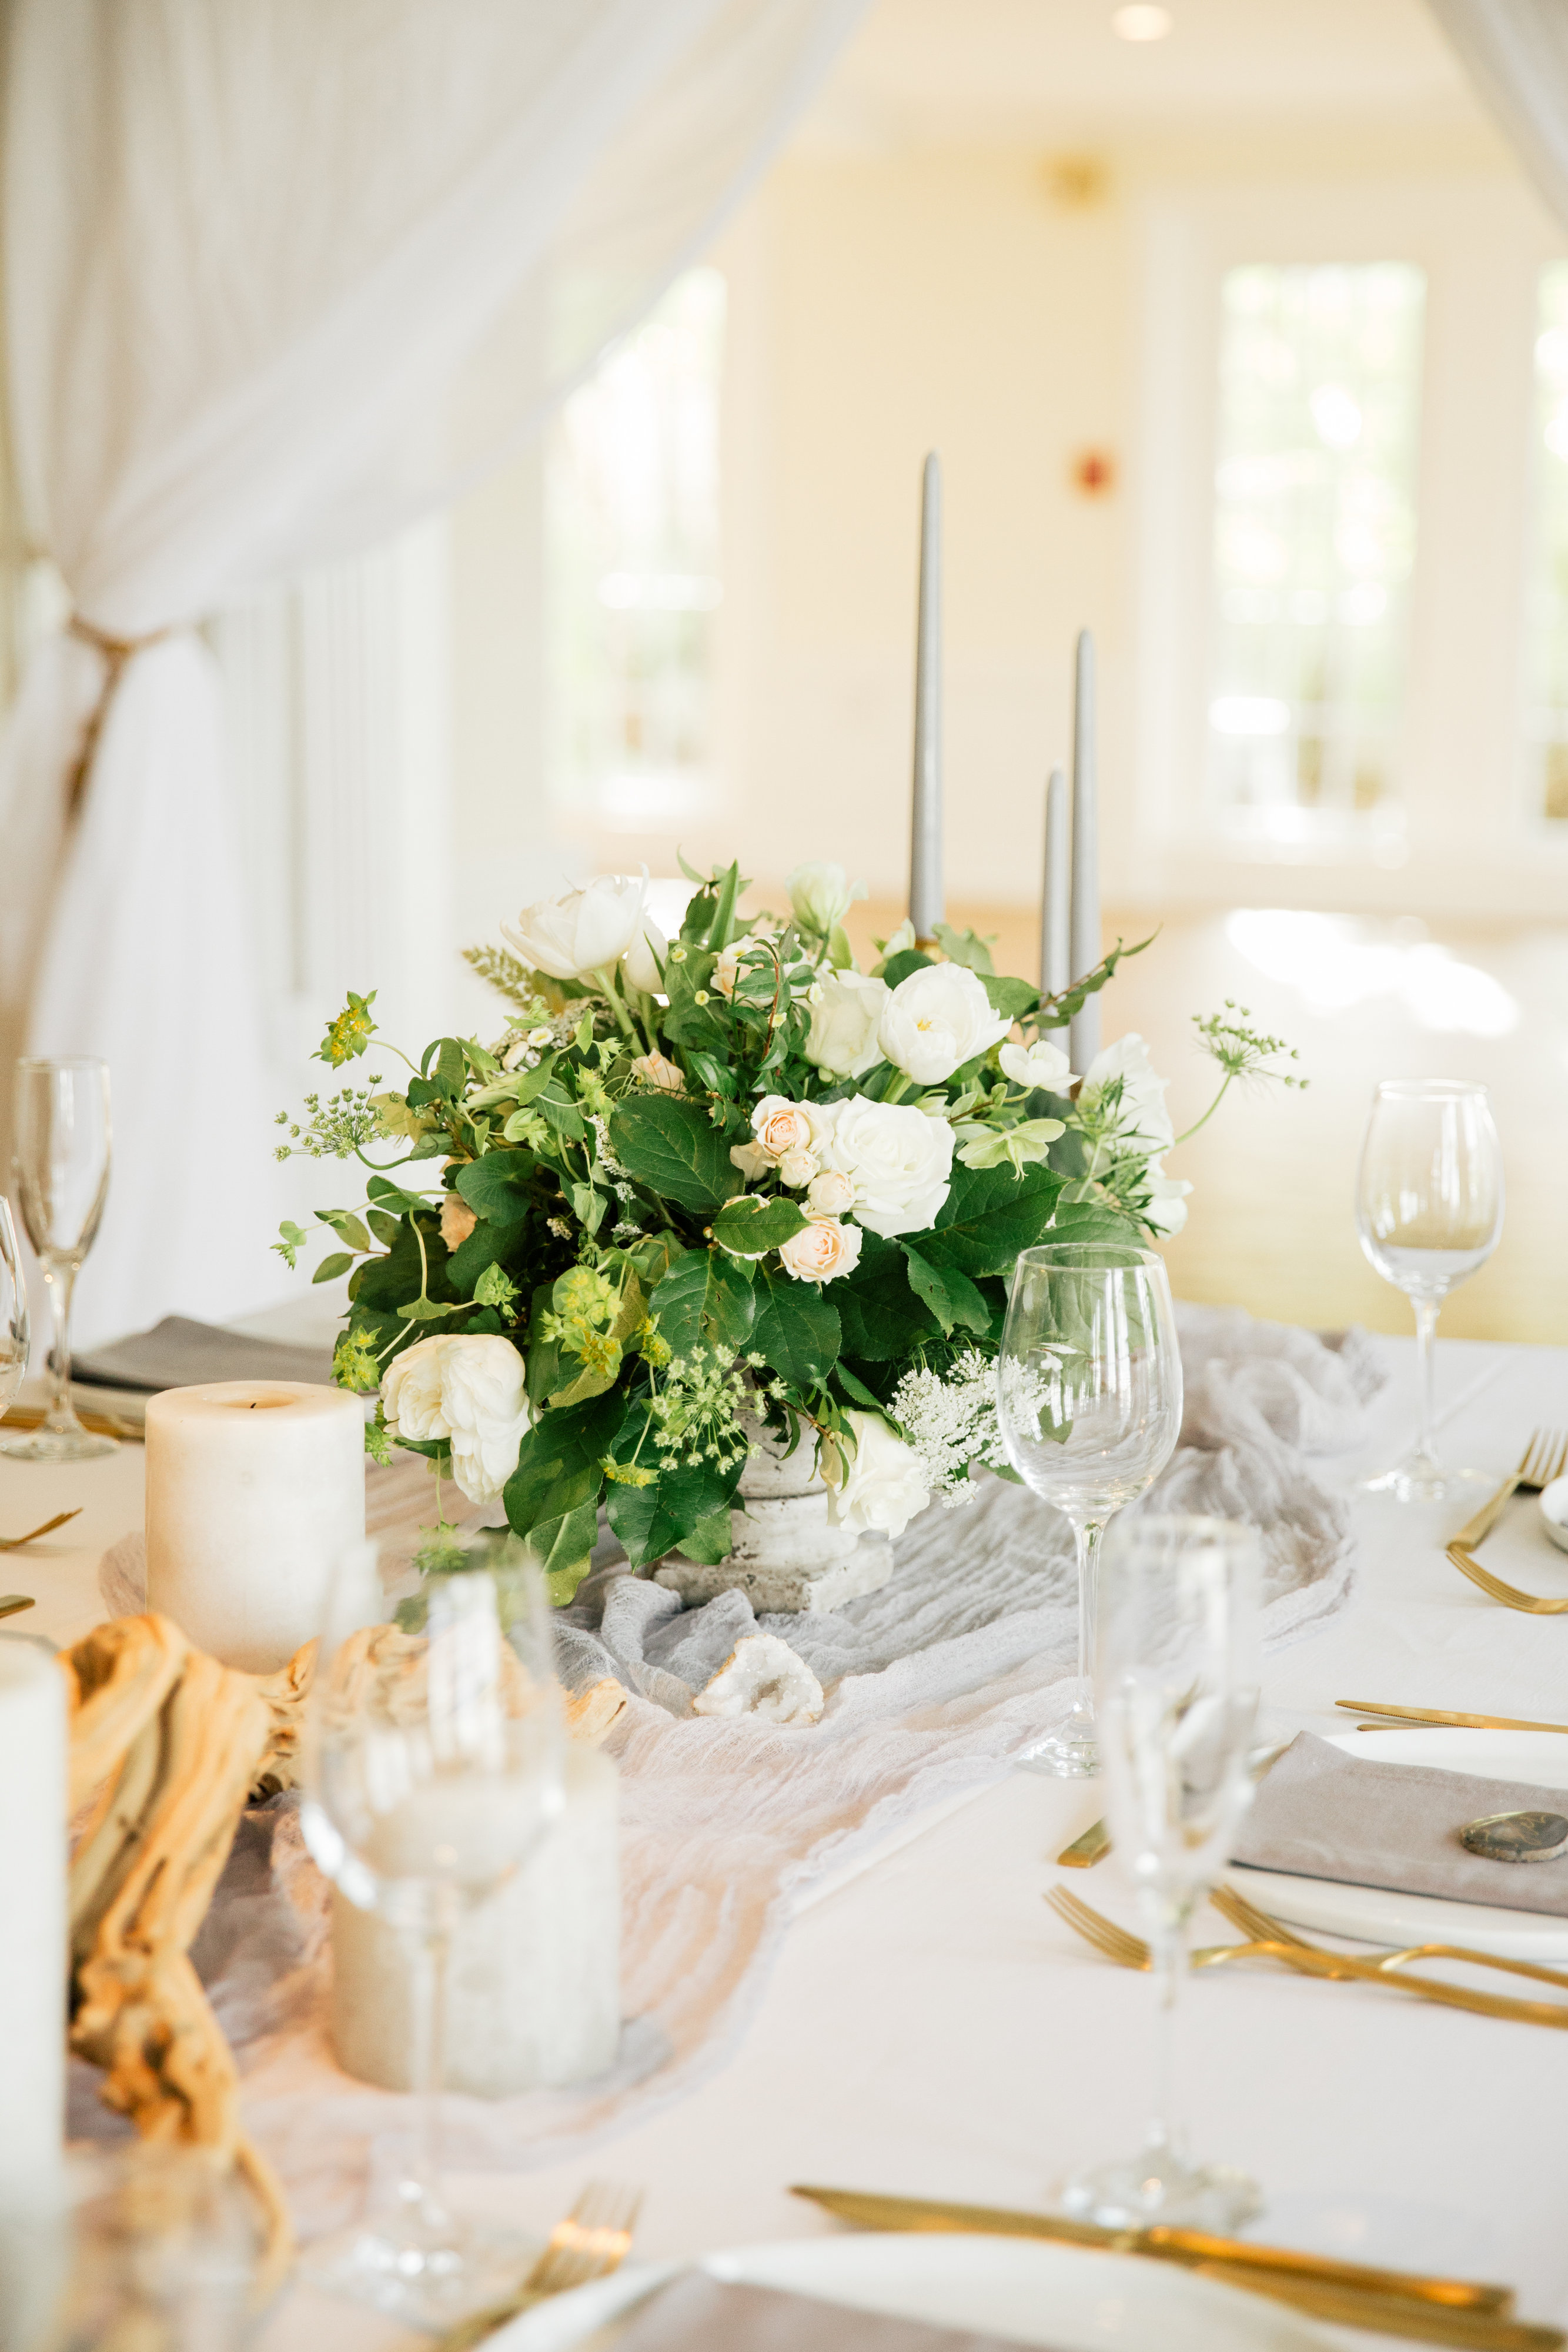 Dove Gray and Cream Wedding Centerpiece - Elizabeth Anne Designs ...